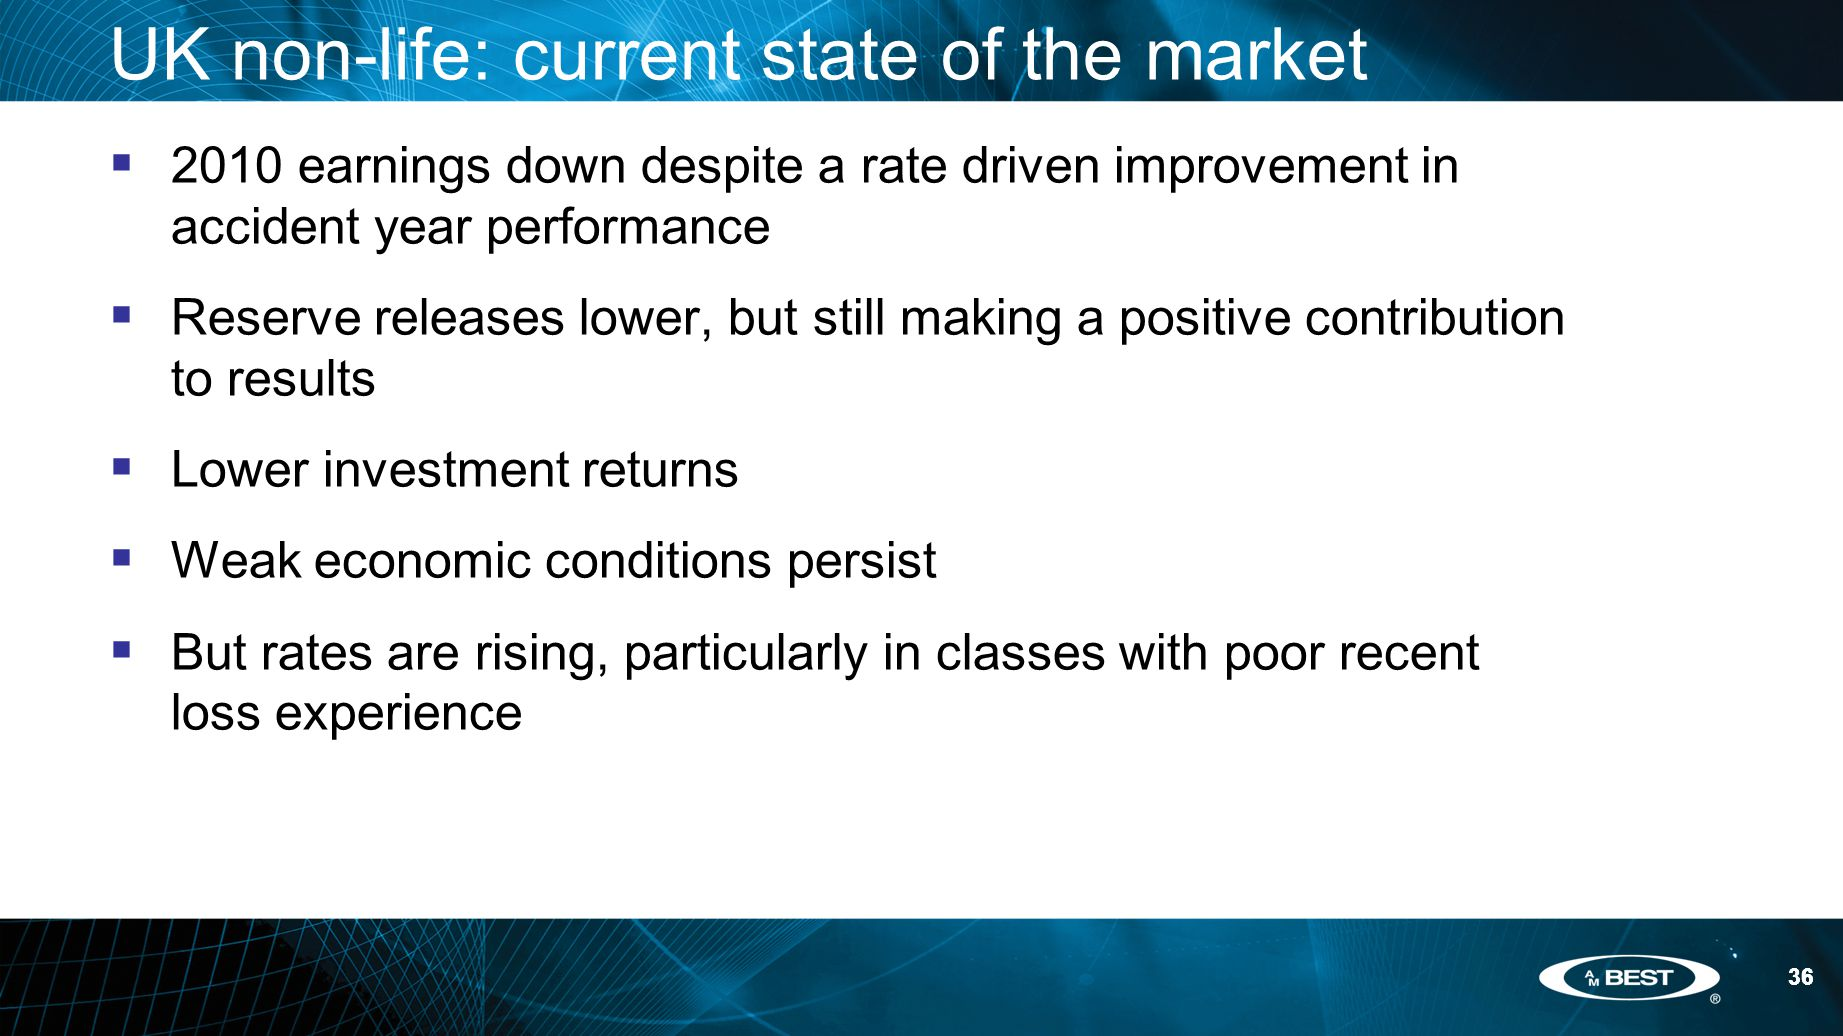 36 UK non-life: current state of the market  2010 earnings down despite a rate driven improvement in accident year performance  Reserve releases lower, but still making a positive contribution to results  Lower investment returns  Weak economic conditions persist  But rates are rising, particularly in classes with poor recent loss experience